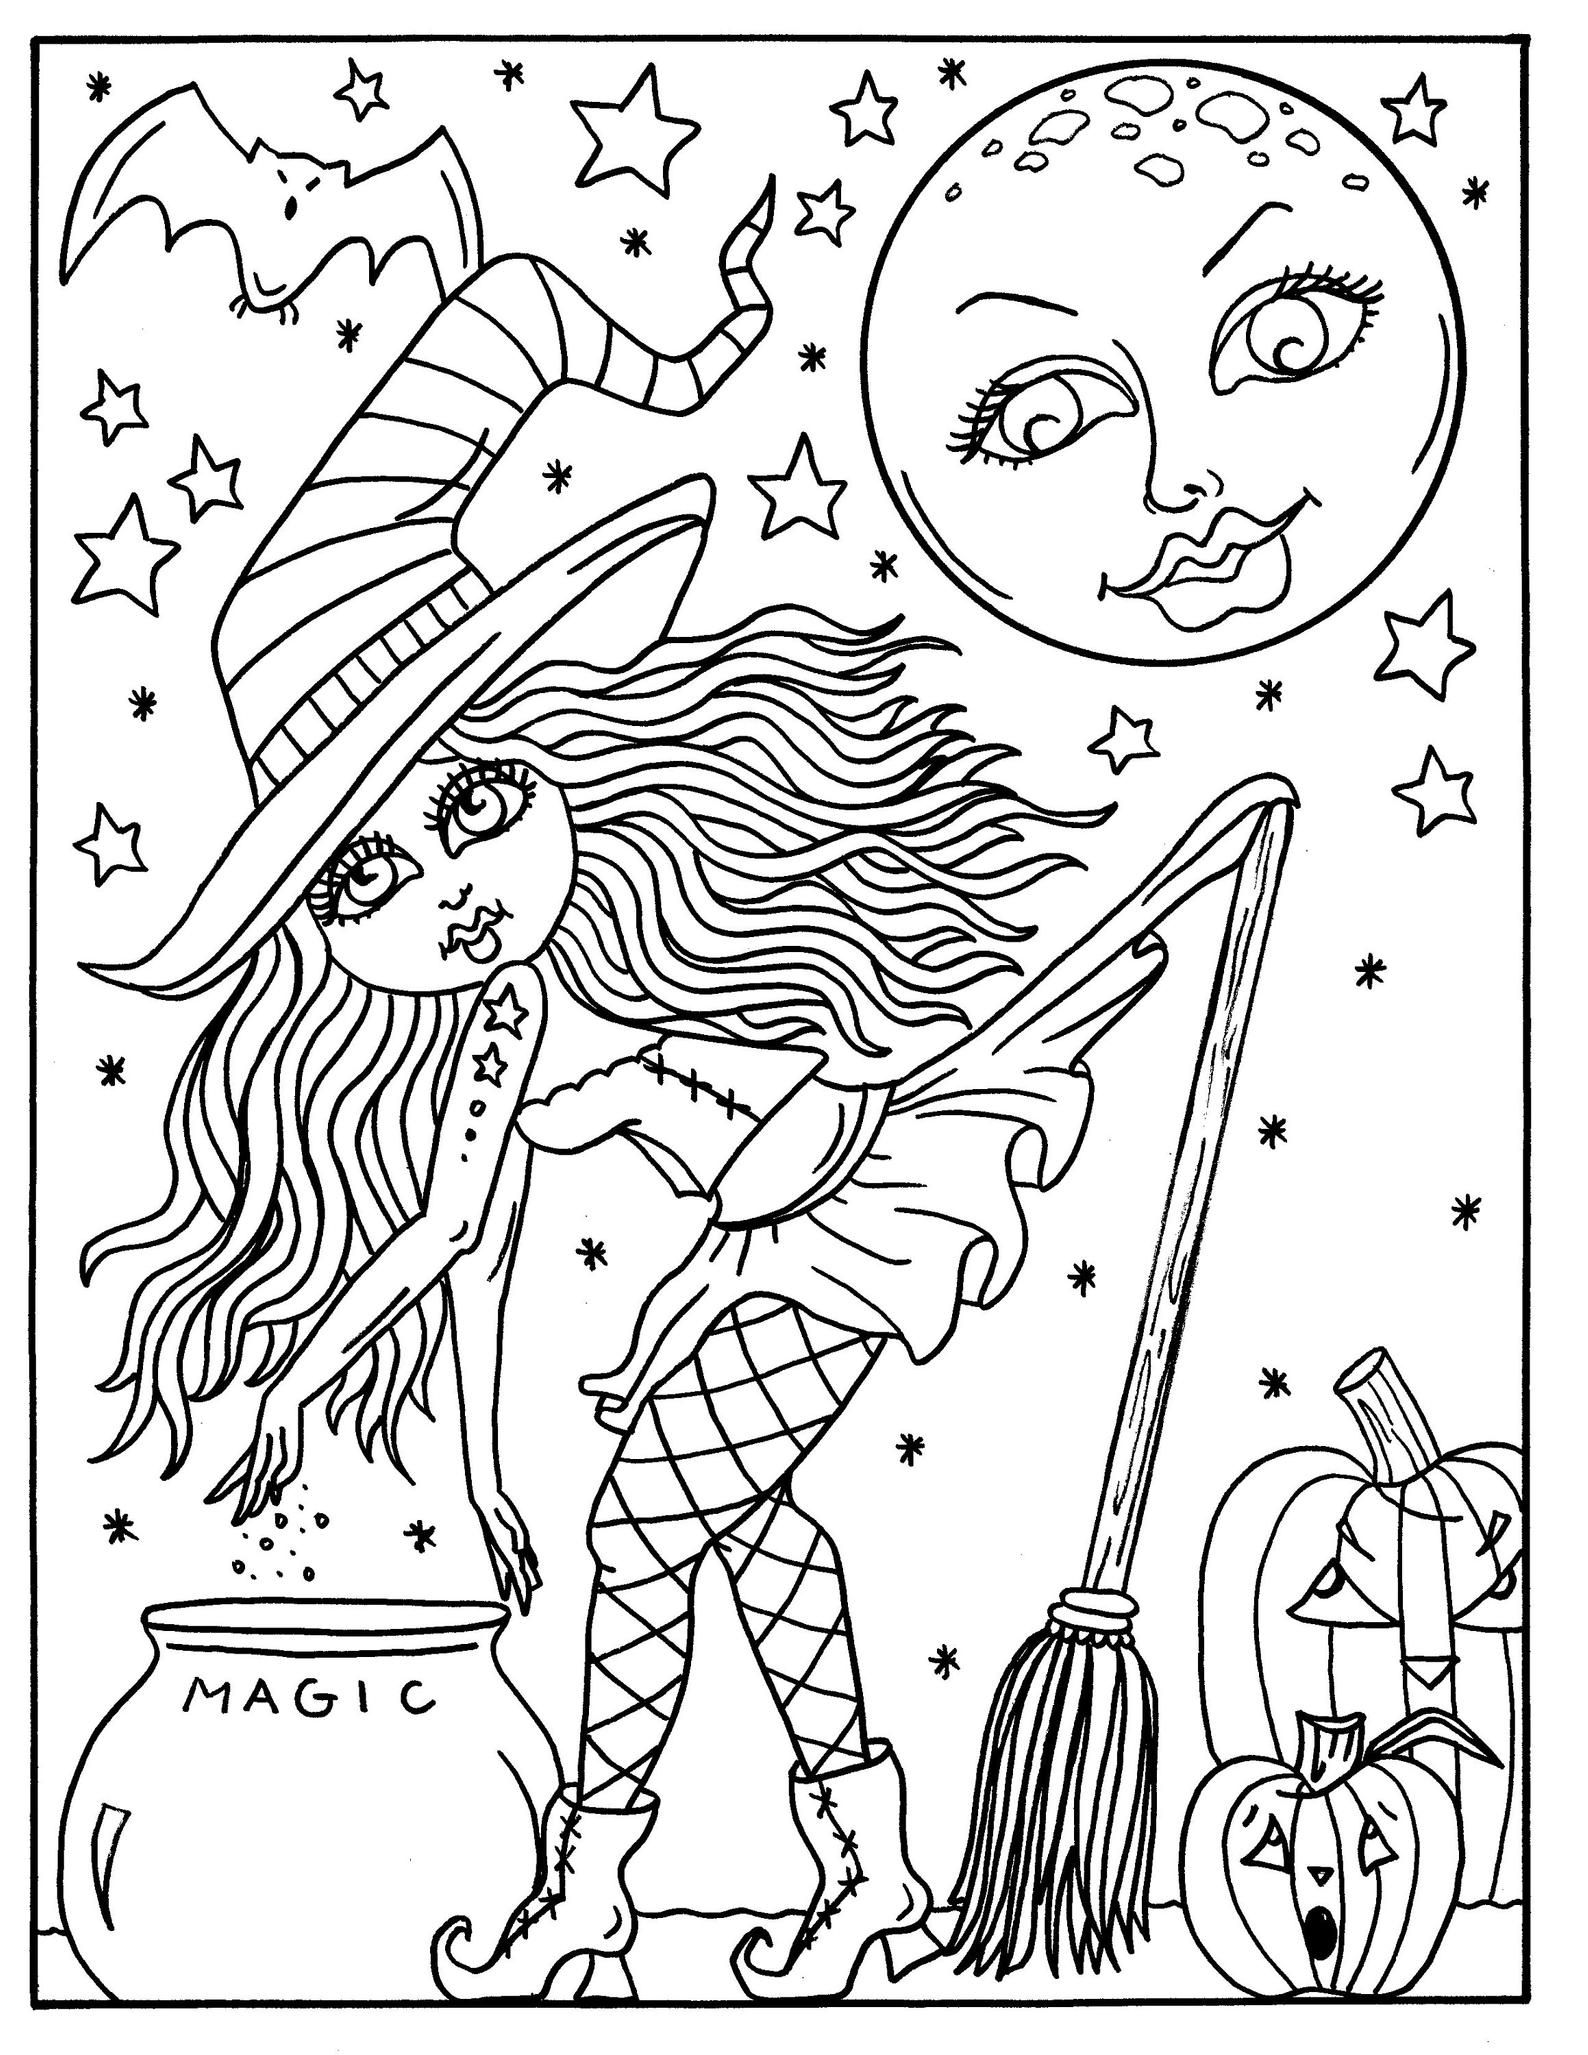 Hocus Pocus Witches Printable Coloring Pages For Adults Etsy Halloween Coloring Book Halloween Coloring Halloween Coloring Pages